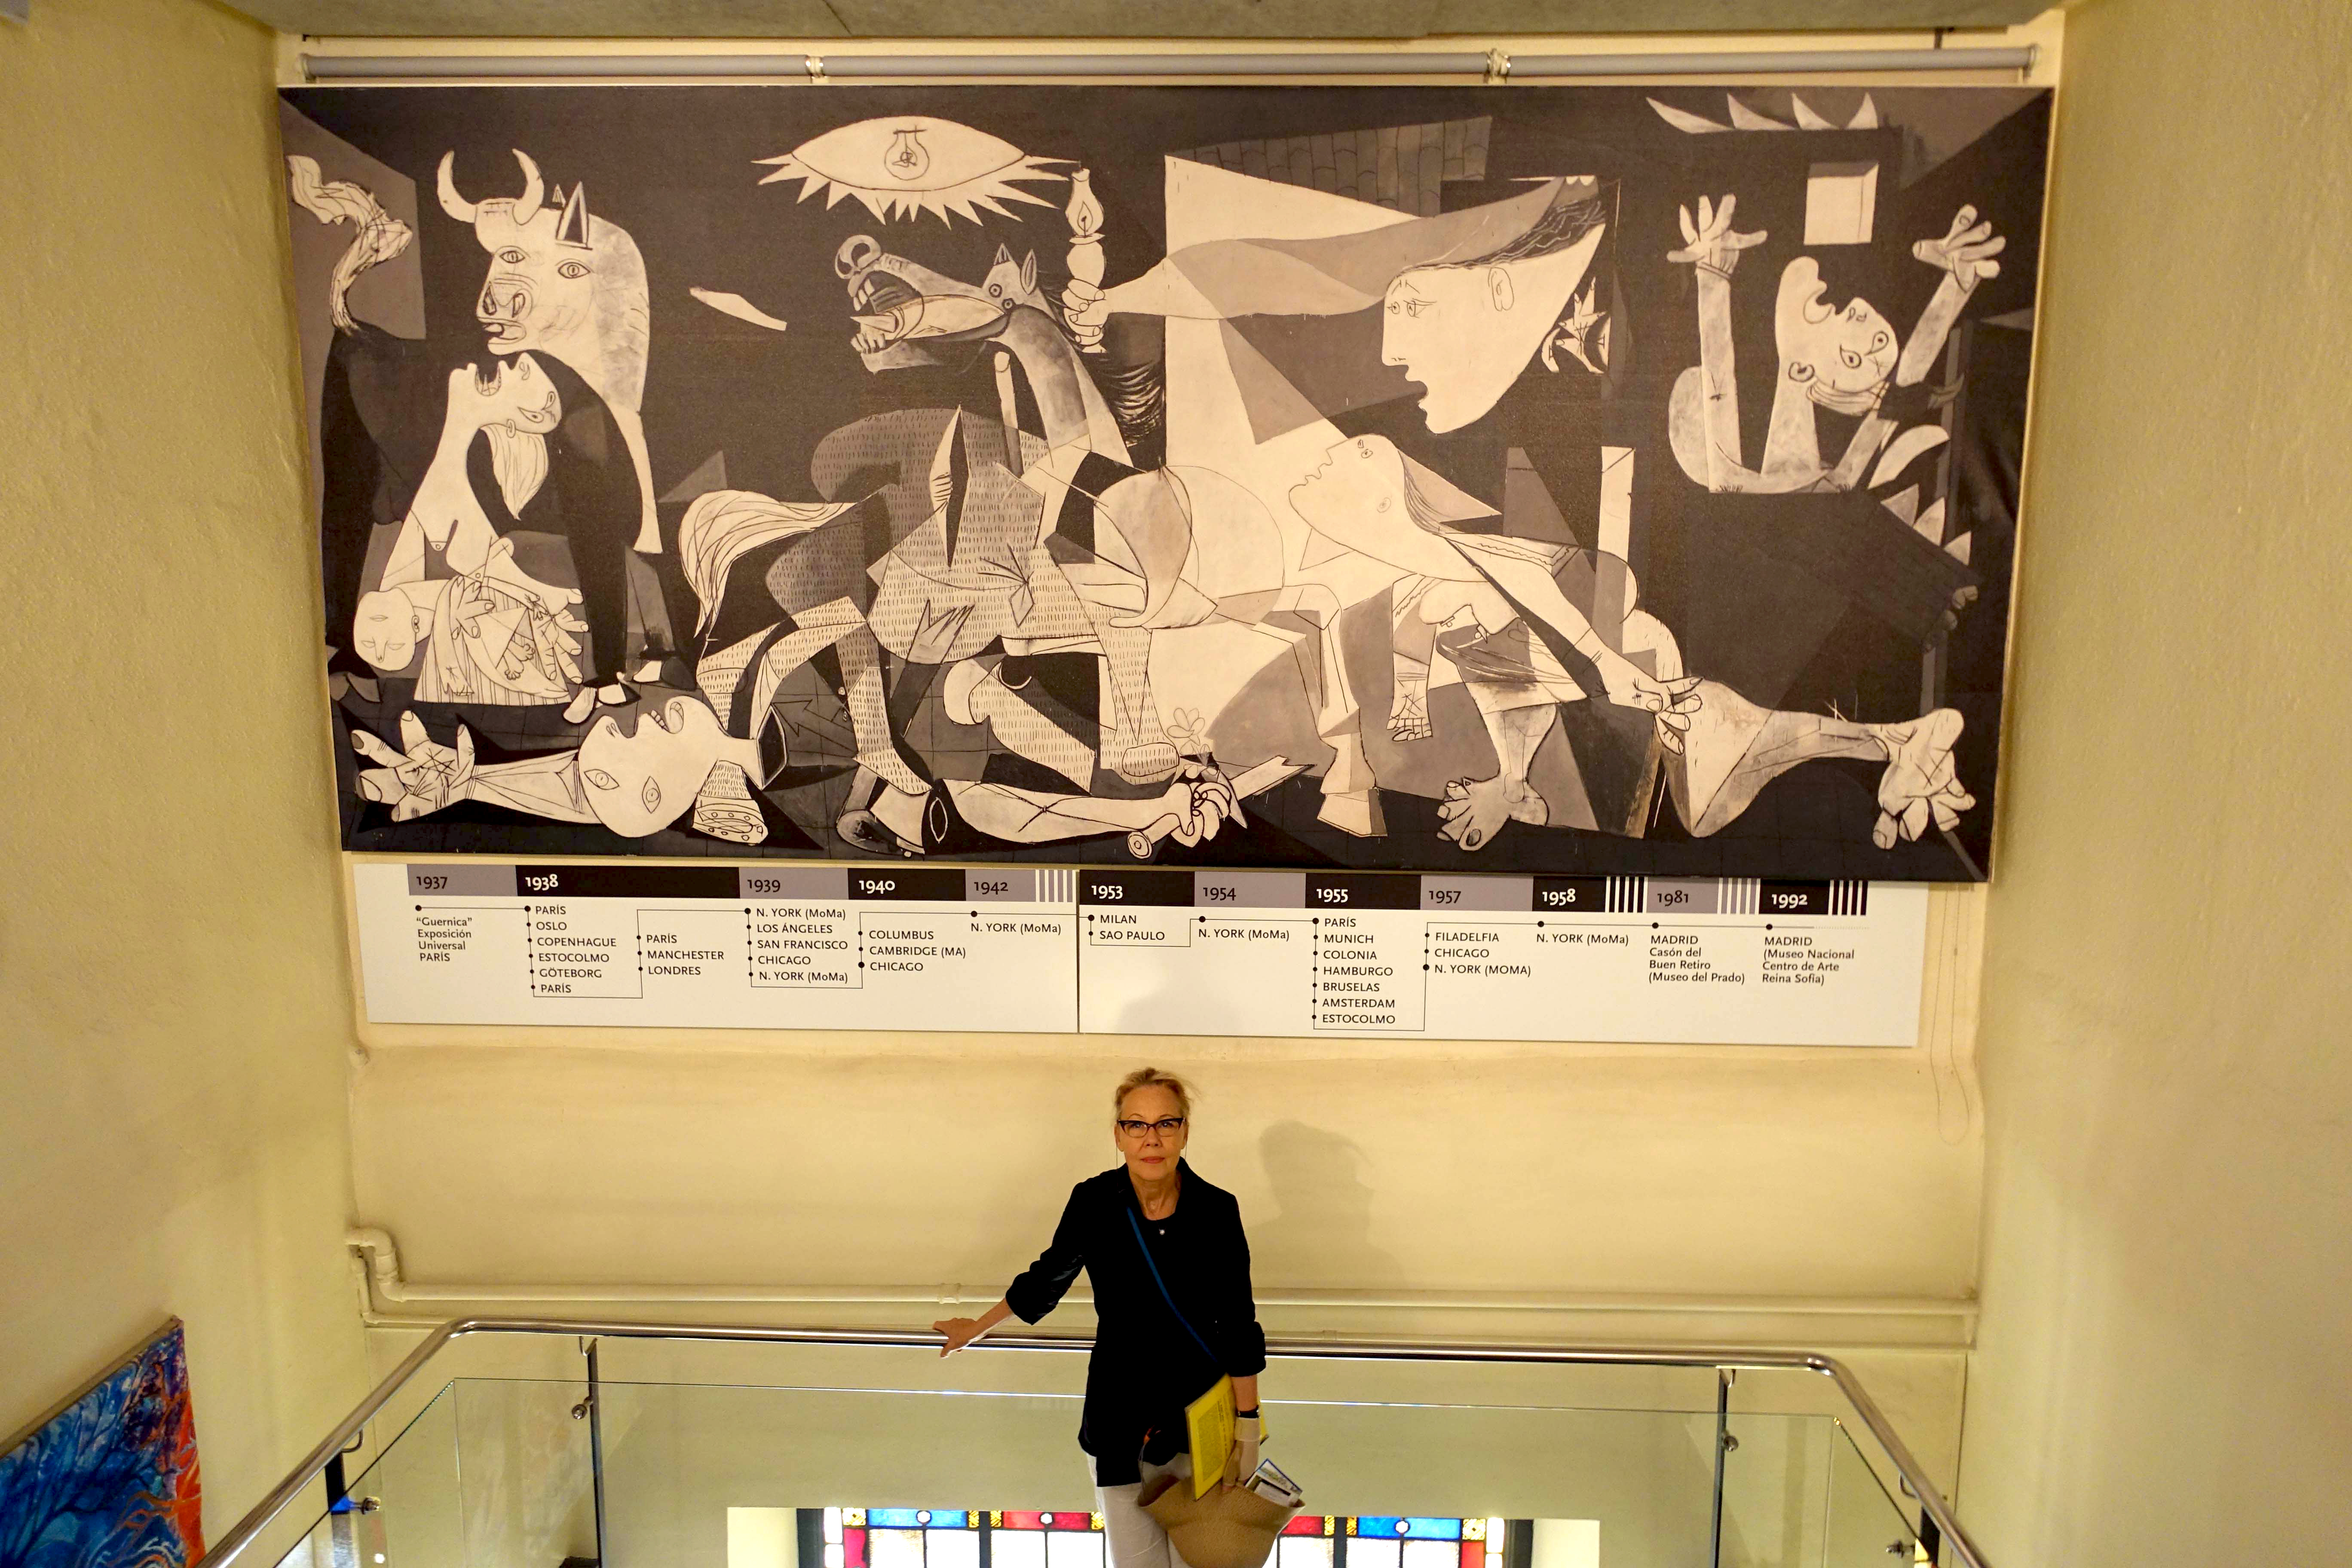 "McKinnon, at the Gernika Peace Museum in Spain, stands in front of a duplicated image of Picasso's ""Guernica"" showing a timeline of its exhibition history in Europe and the U.S. The museum is near the site of the Luftwaffe bombing that inspired Picasso's"